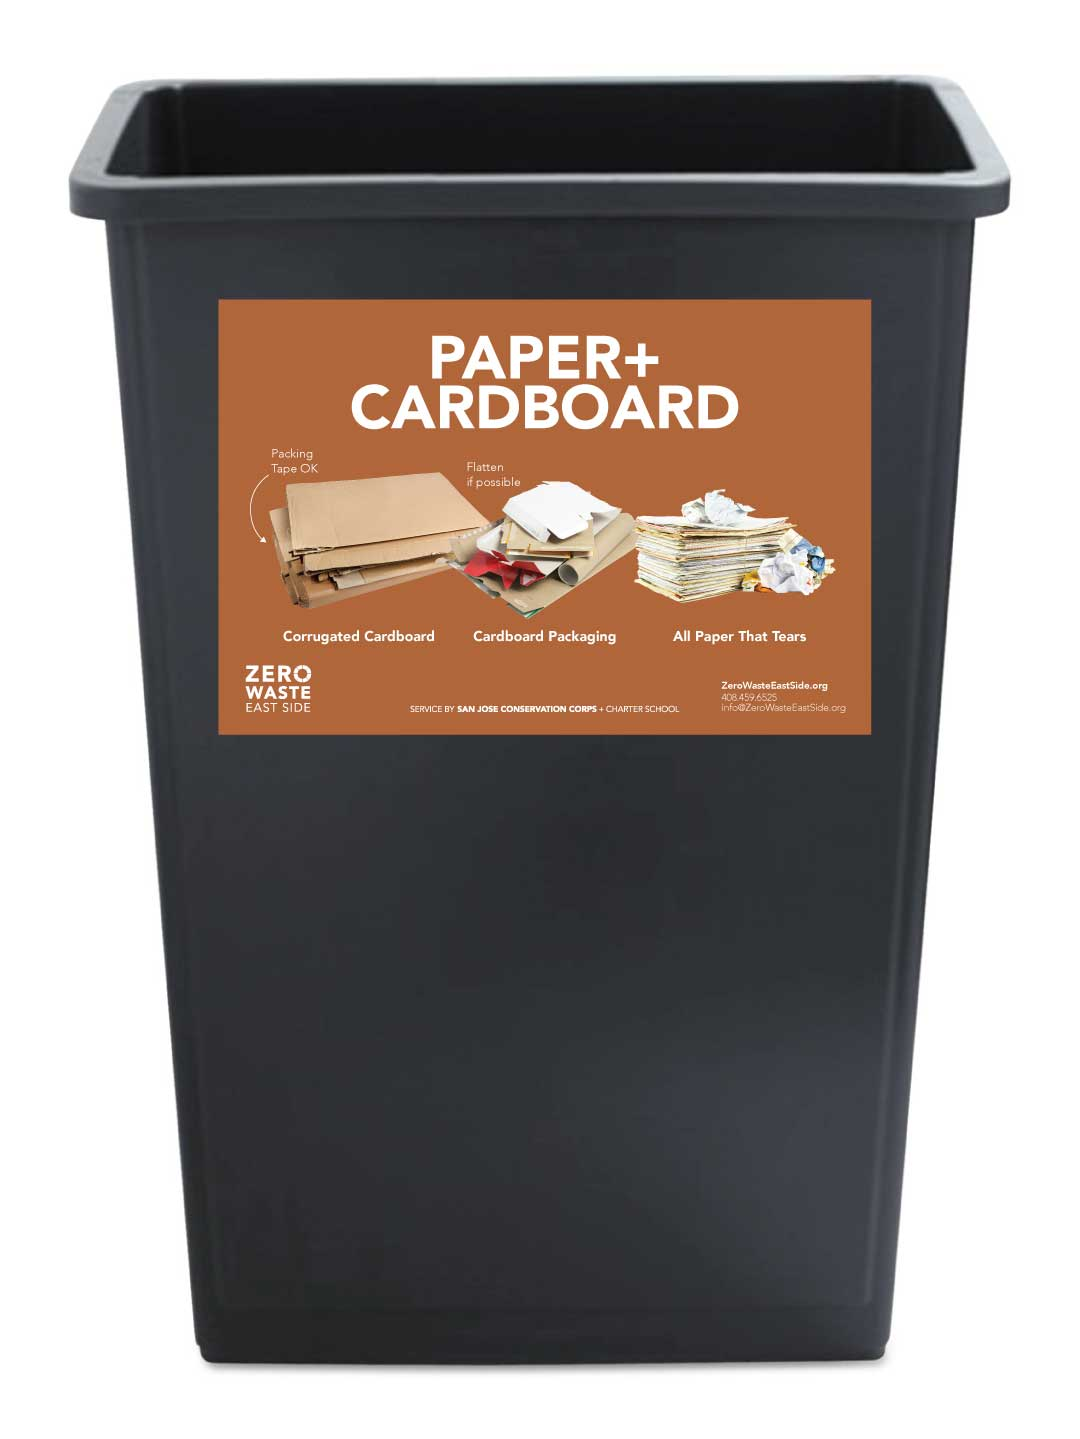 Receptacle Label for Paper + Cardboard